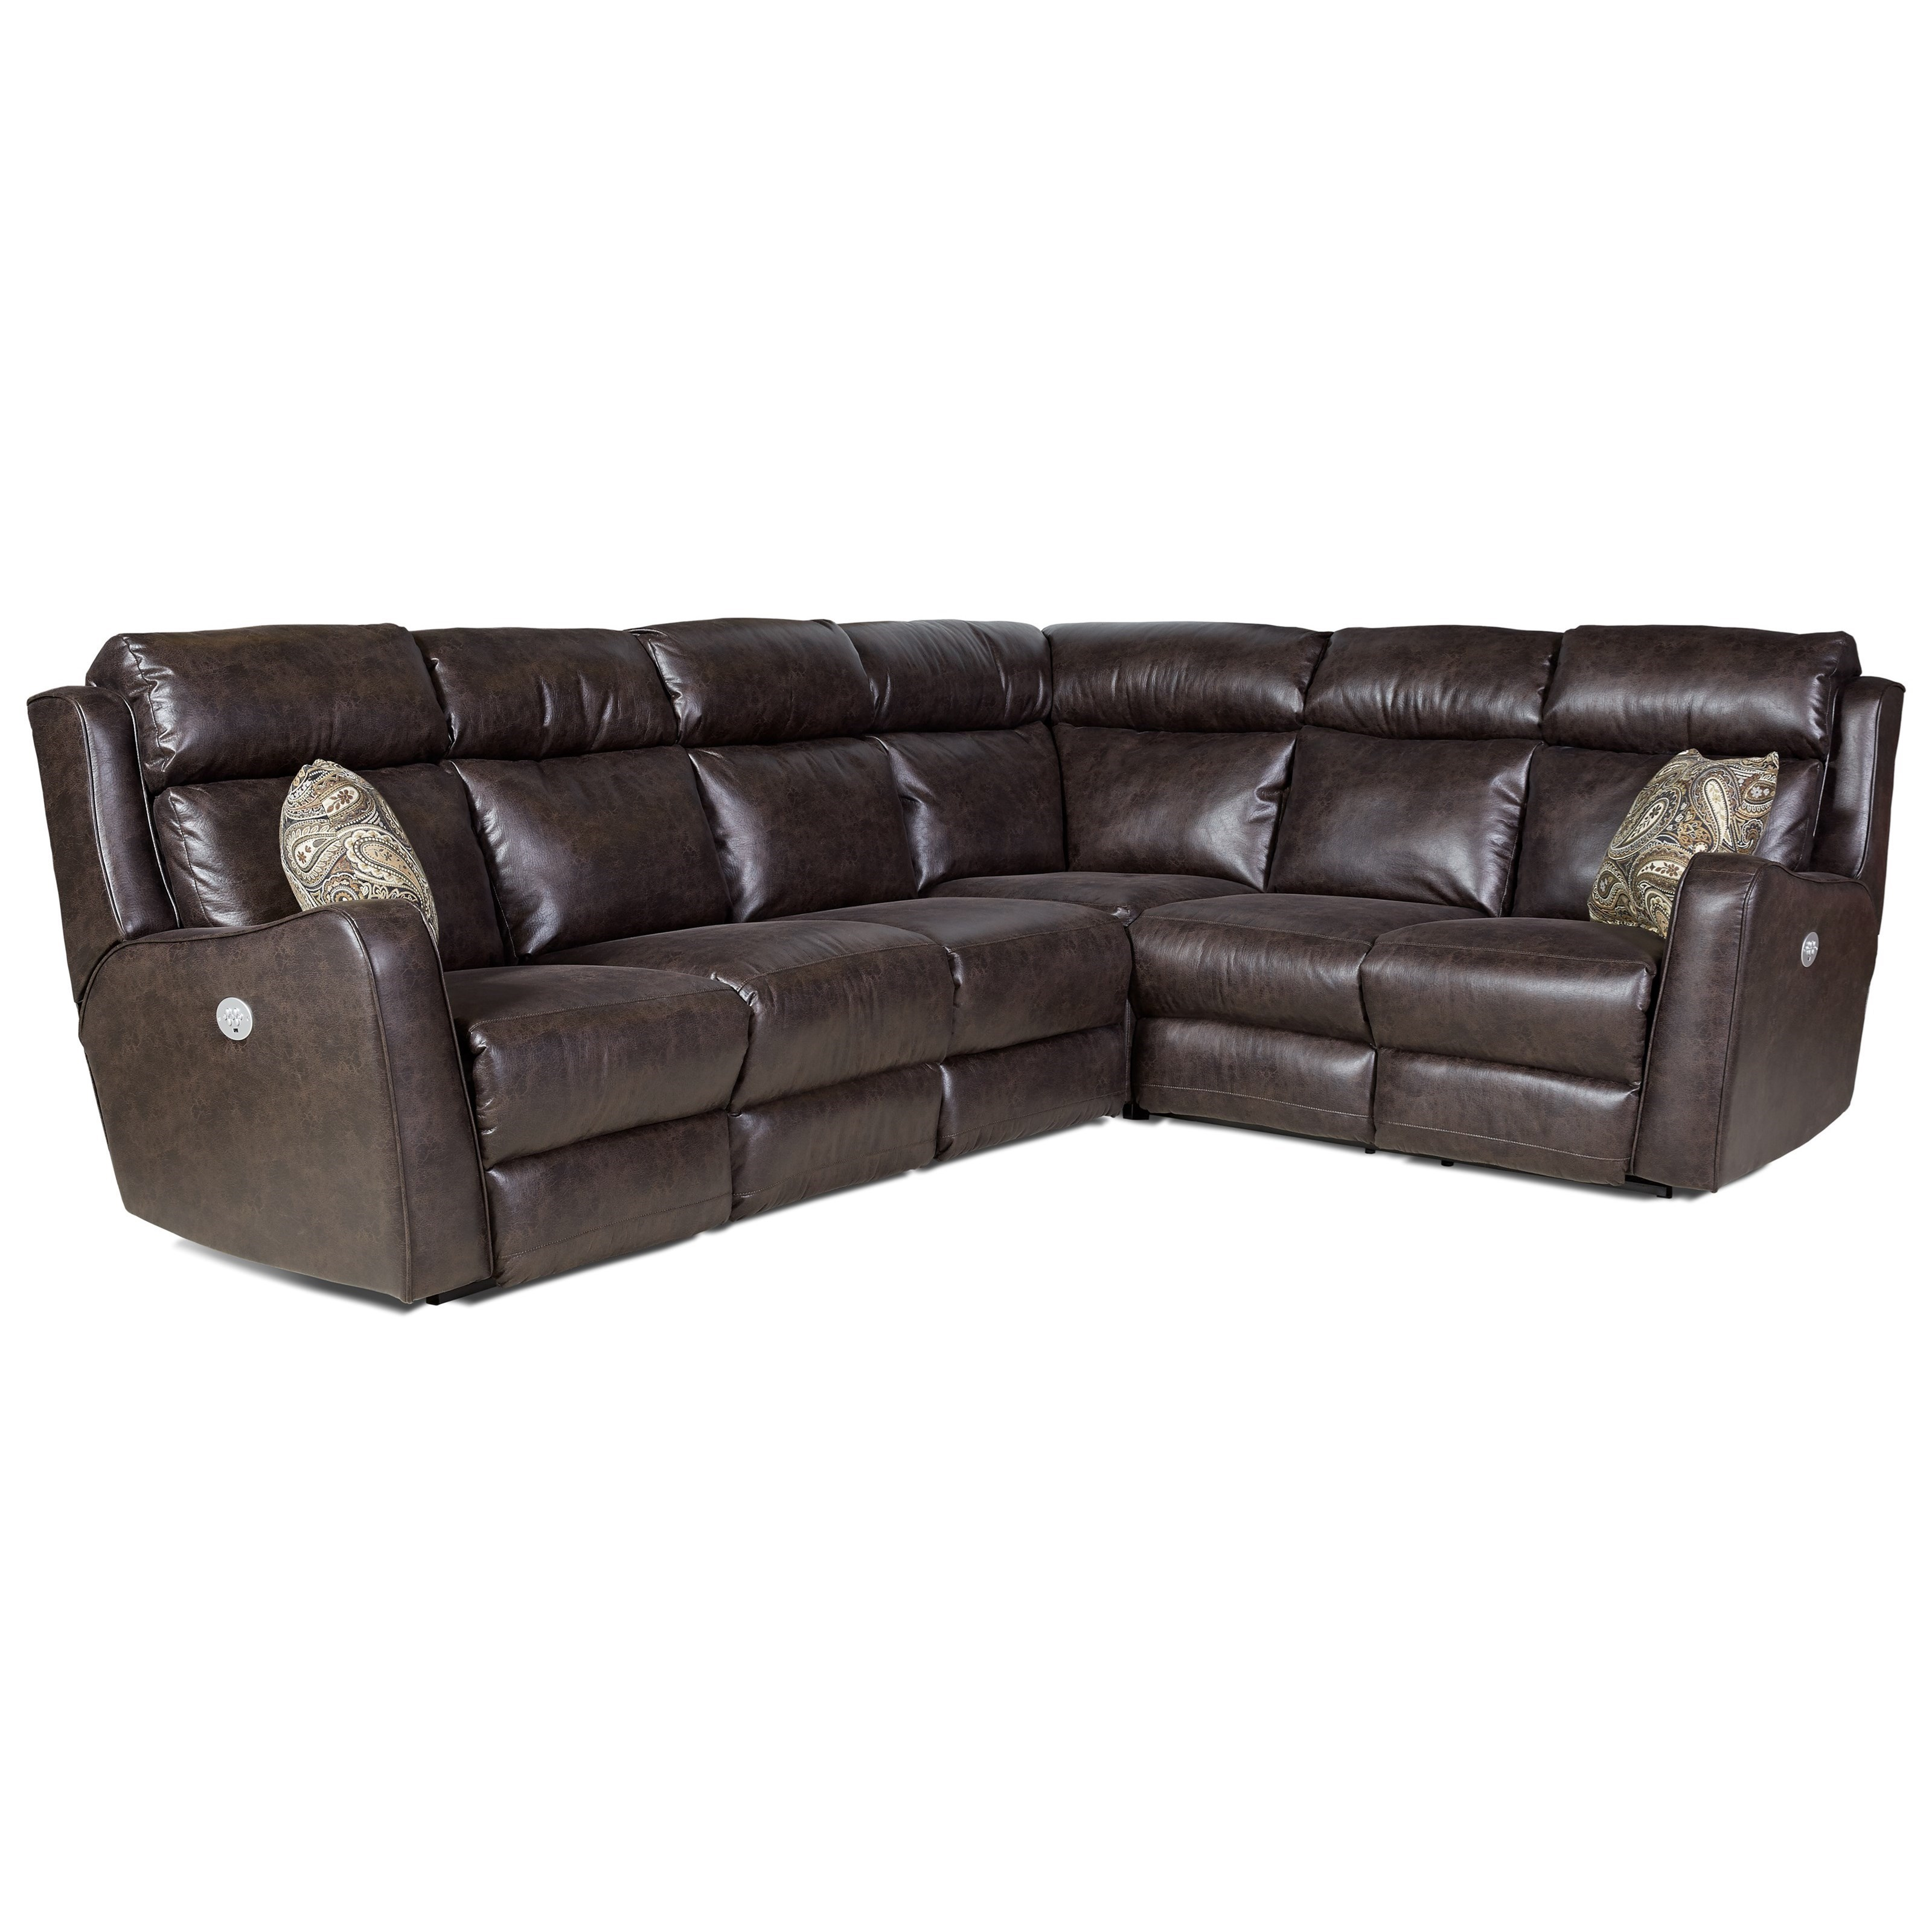 first class 718 power reclining sectional sofa with five seats by southern motion